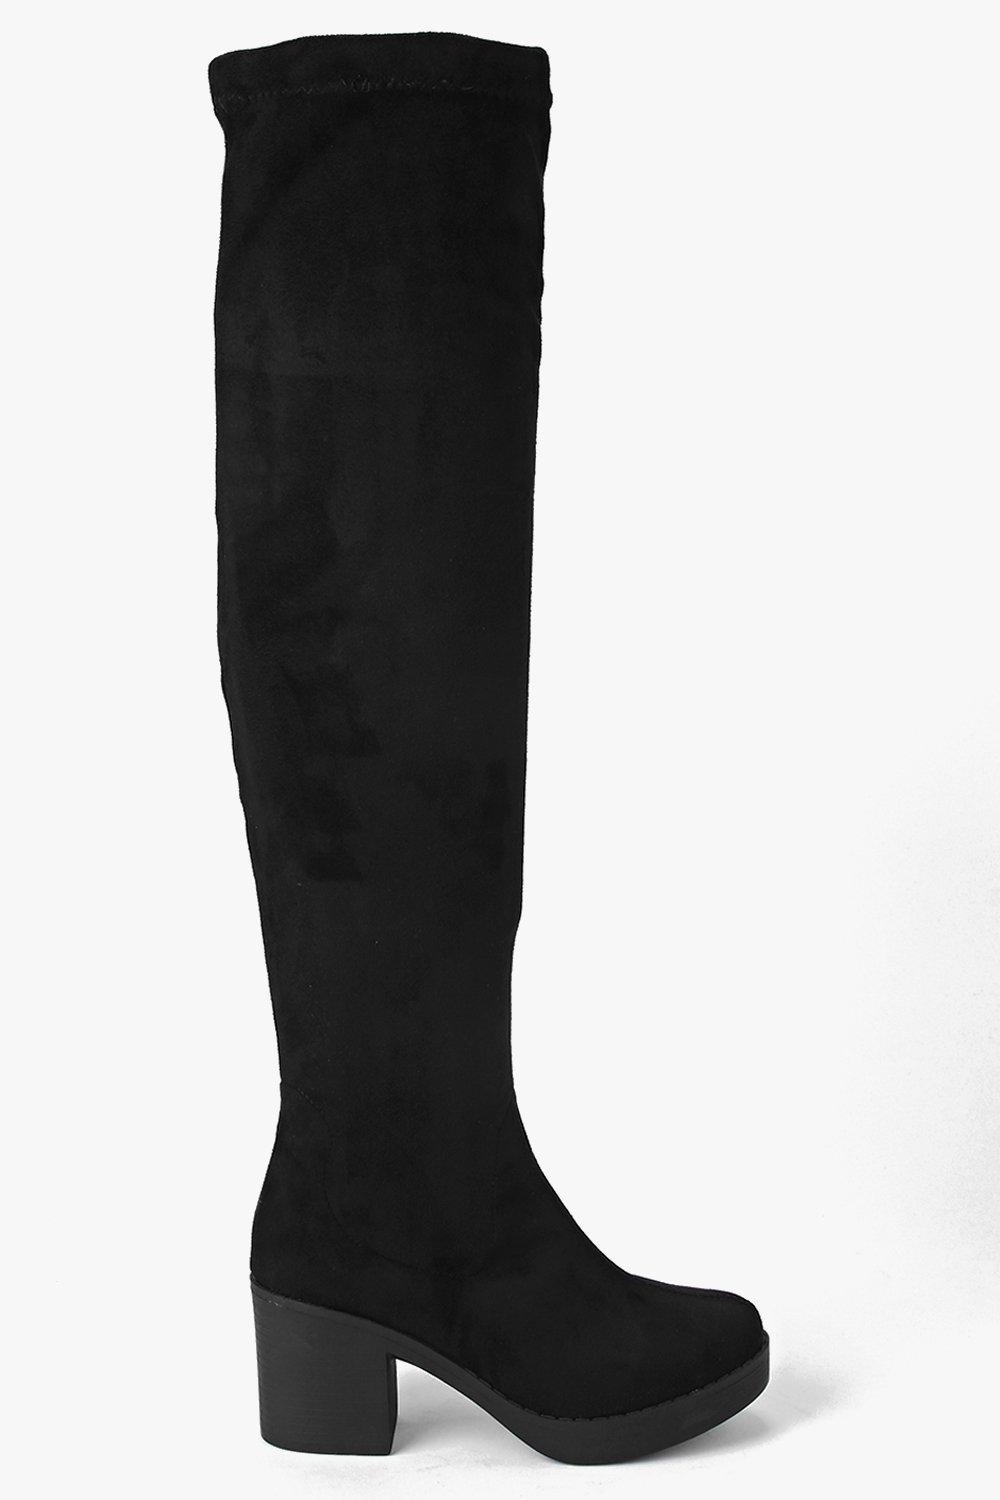 0b85db87ab7 Block Heel Over The Knee Boots. Hover to zoom